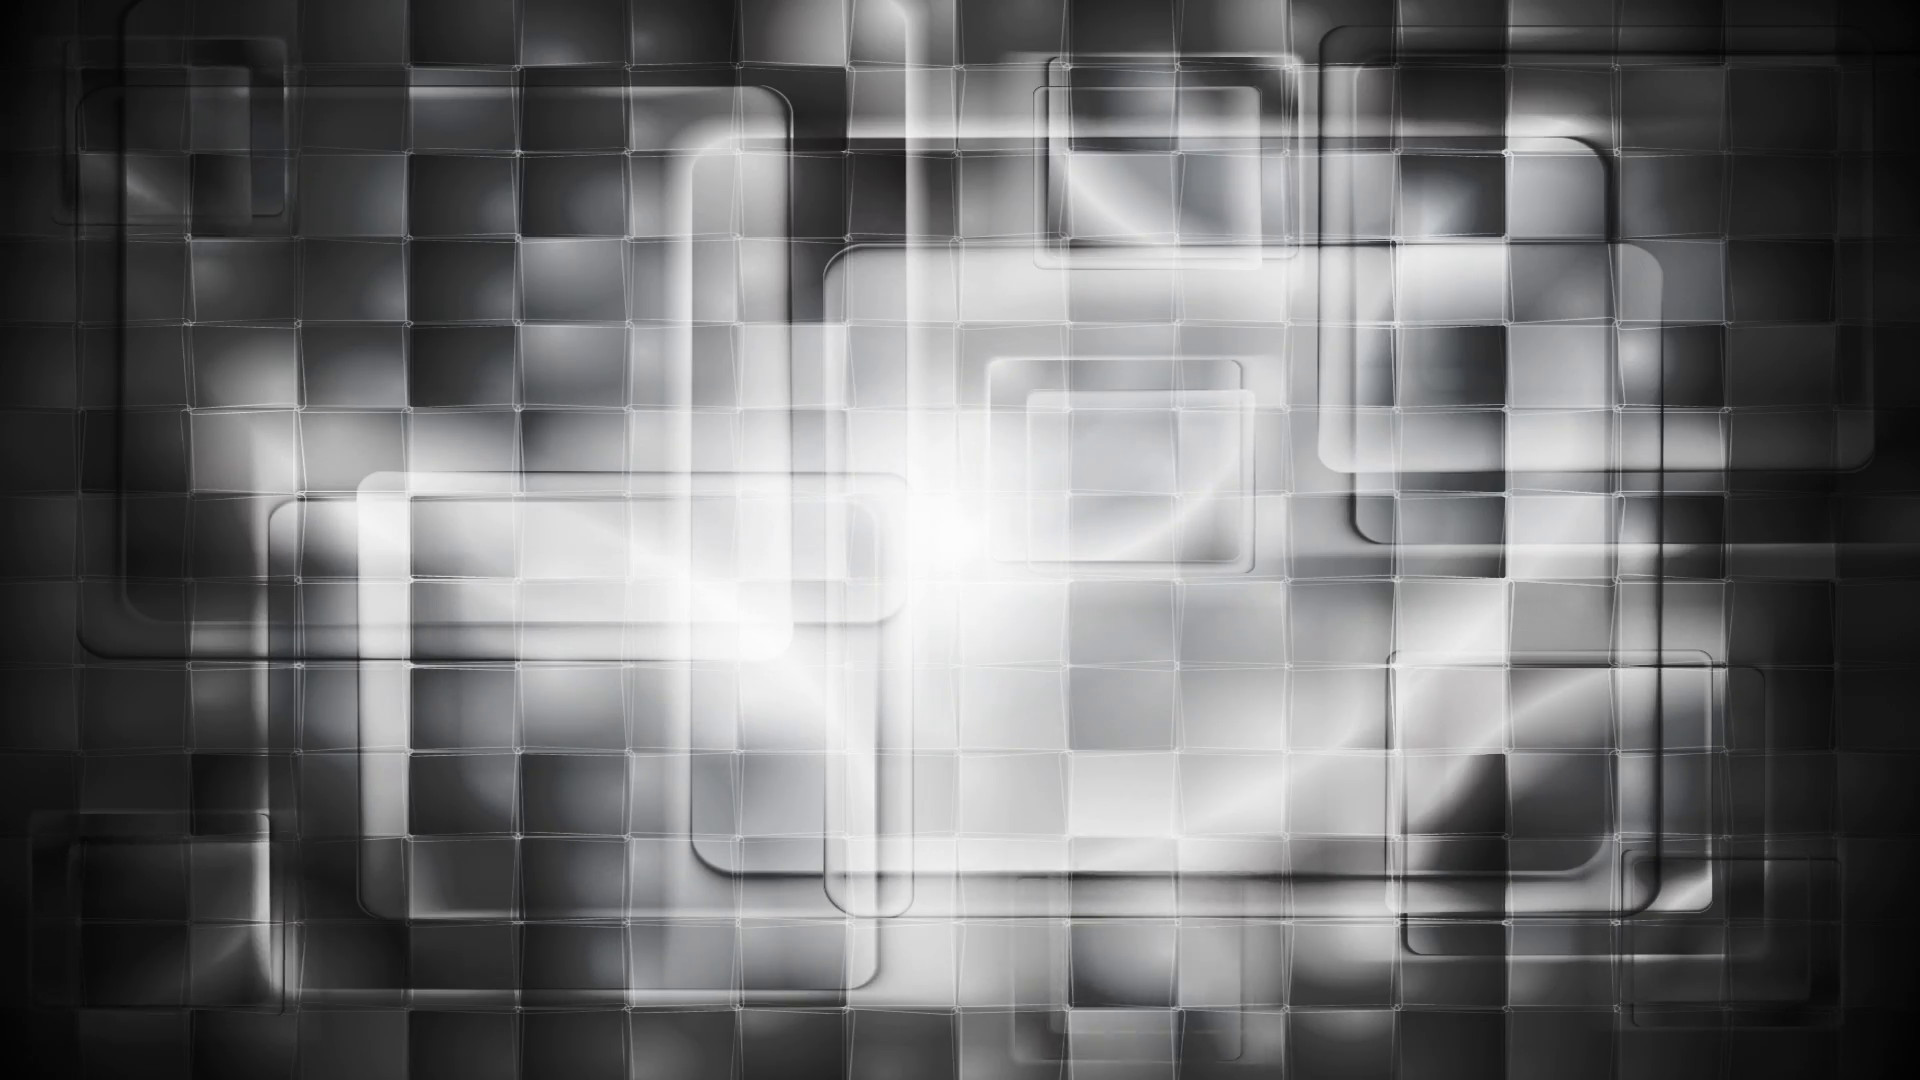 Black and white abstract background 48 images - White abstract background hd ...